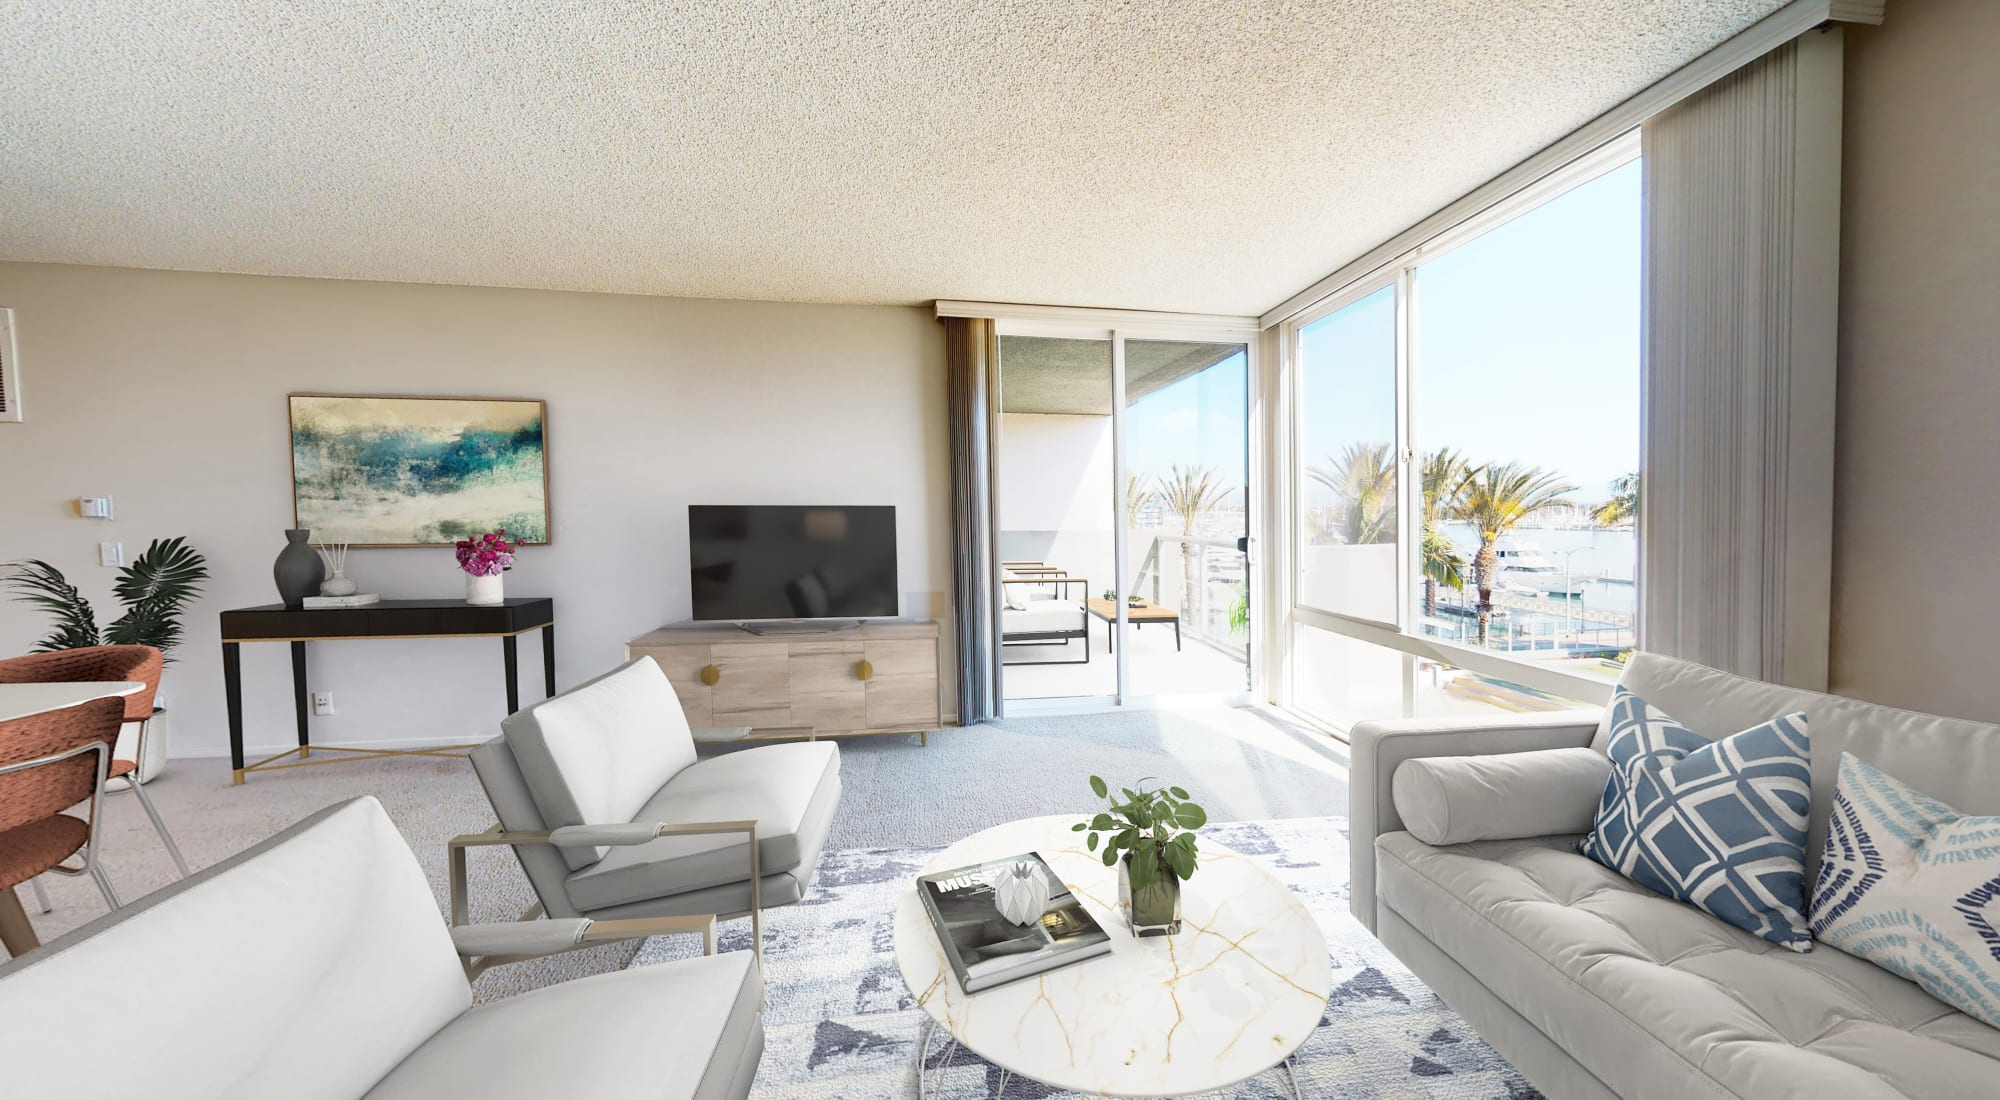 Living room with floor-to-ceiling windows and view of the marina at Waters Edge at Marina Harbor in Marina del Rey, California